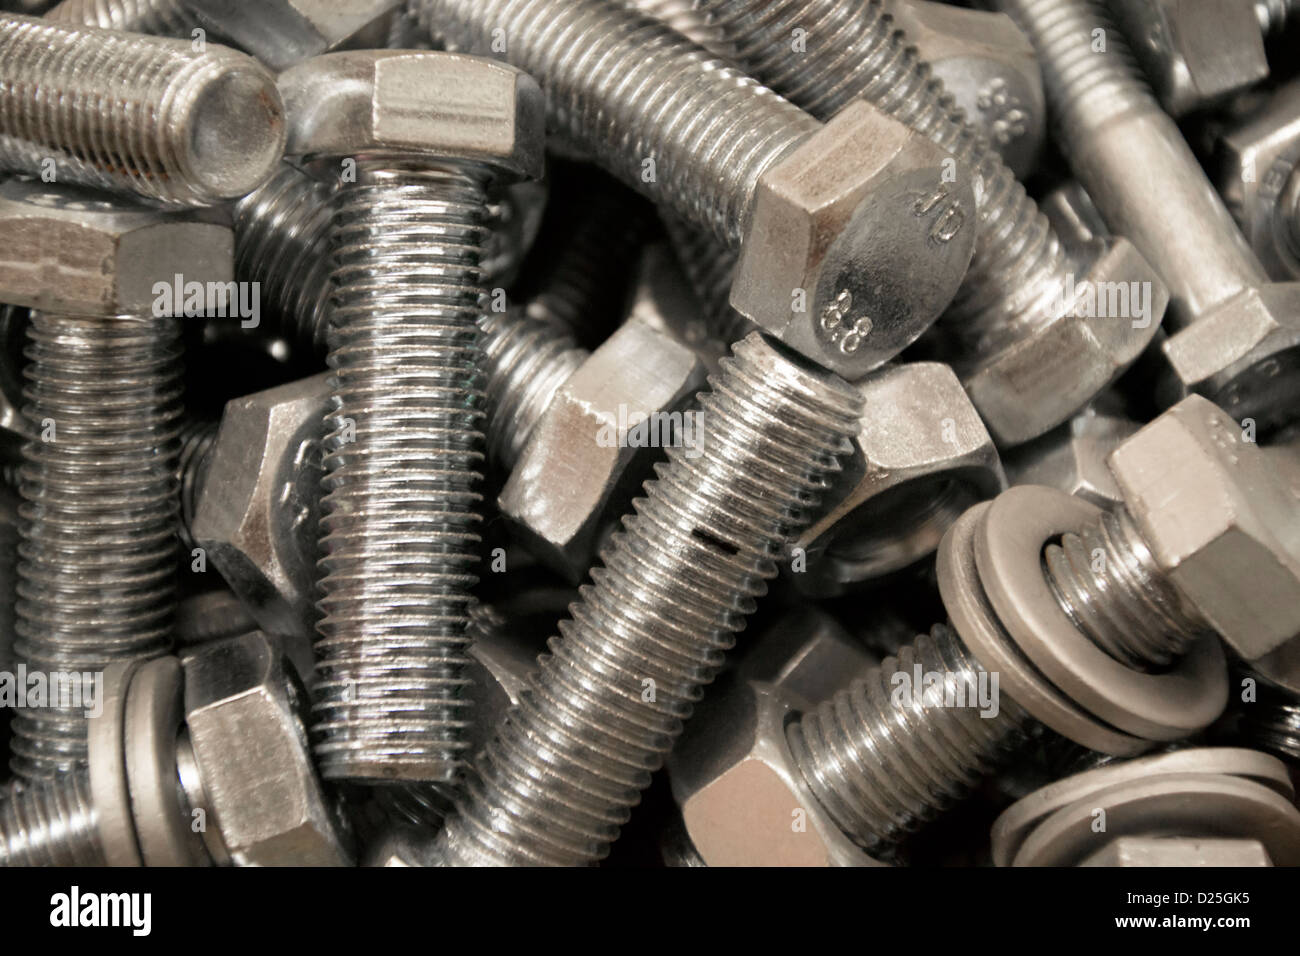 A bunch of fasteners Stock Photo